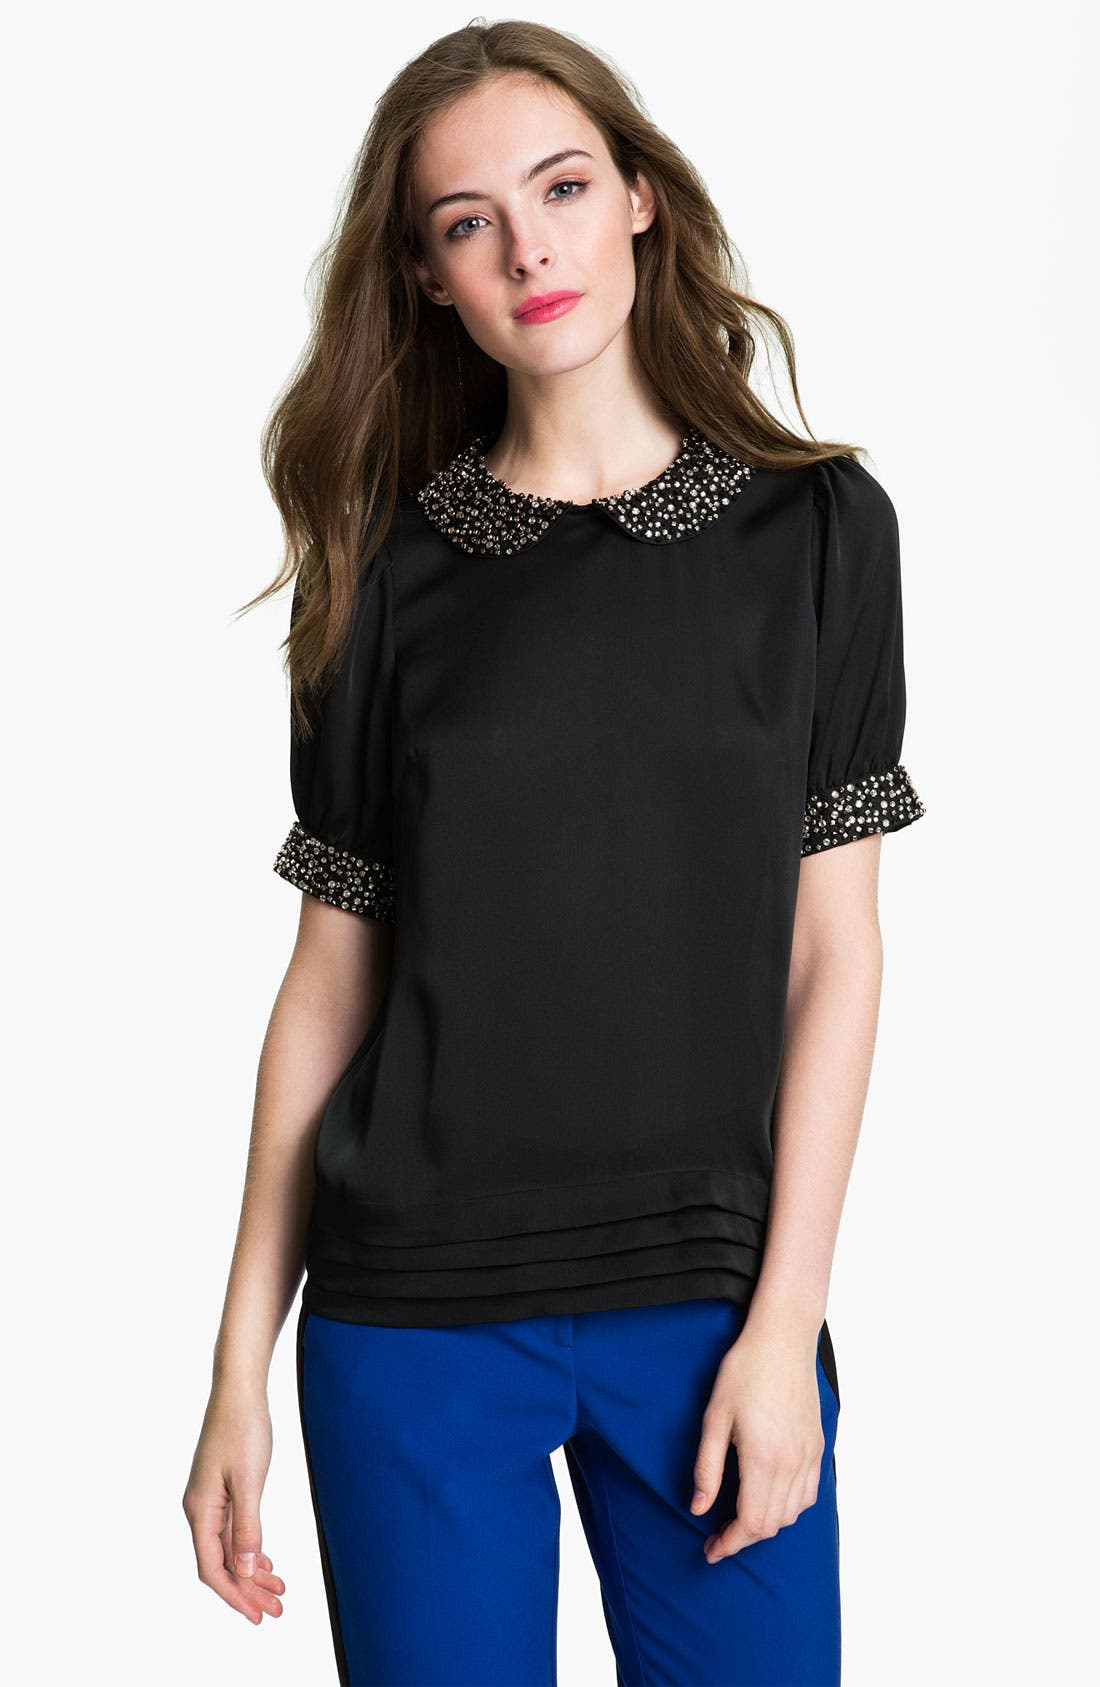 Alternate Image 1 Selected - Vince Camuto Jewel Trim Blouse with Camisole